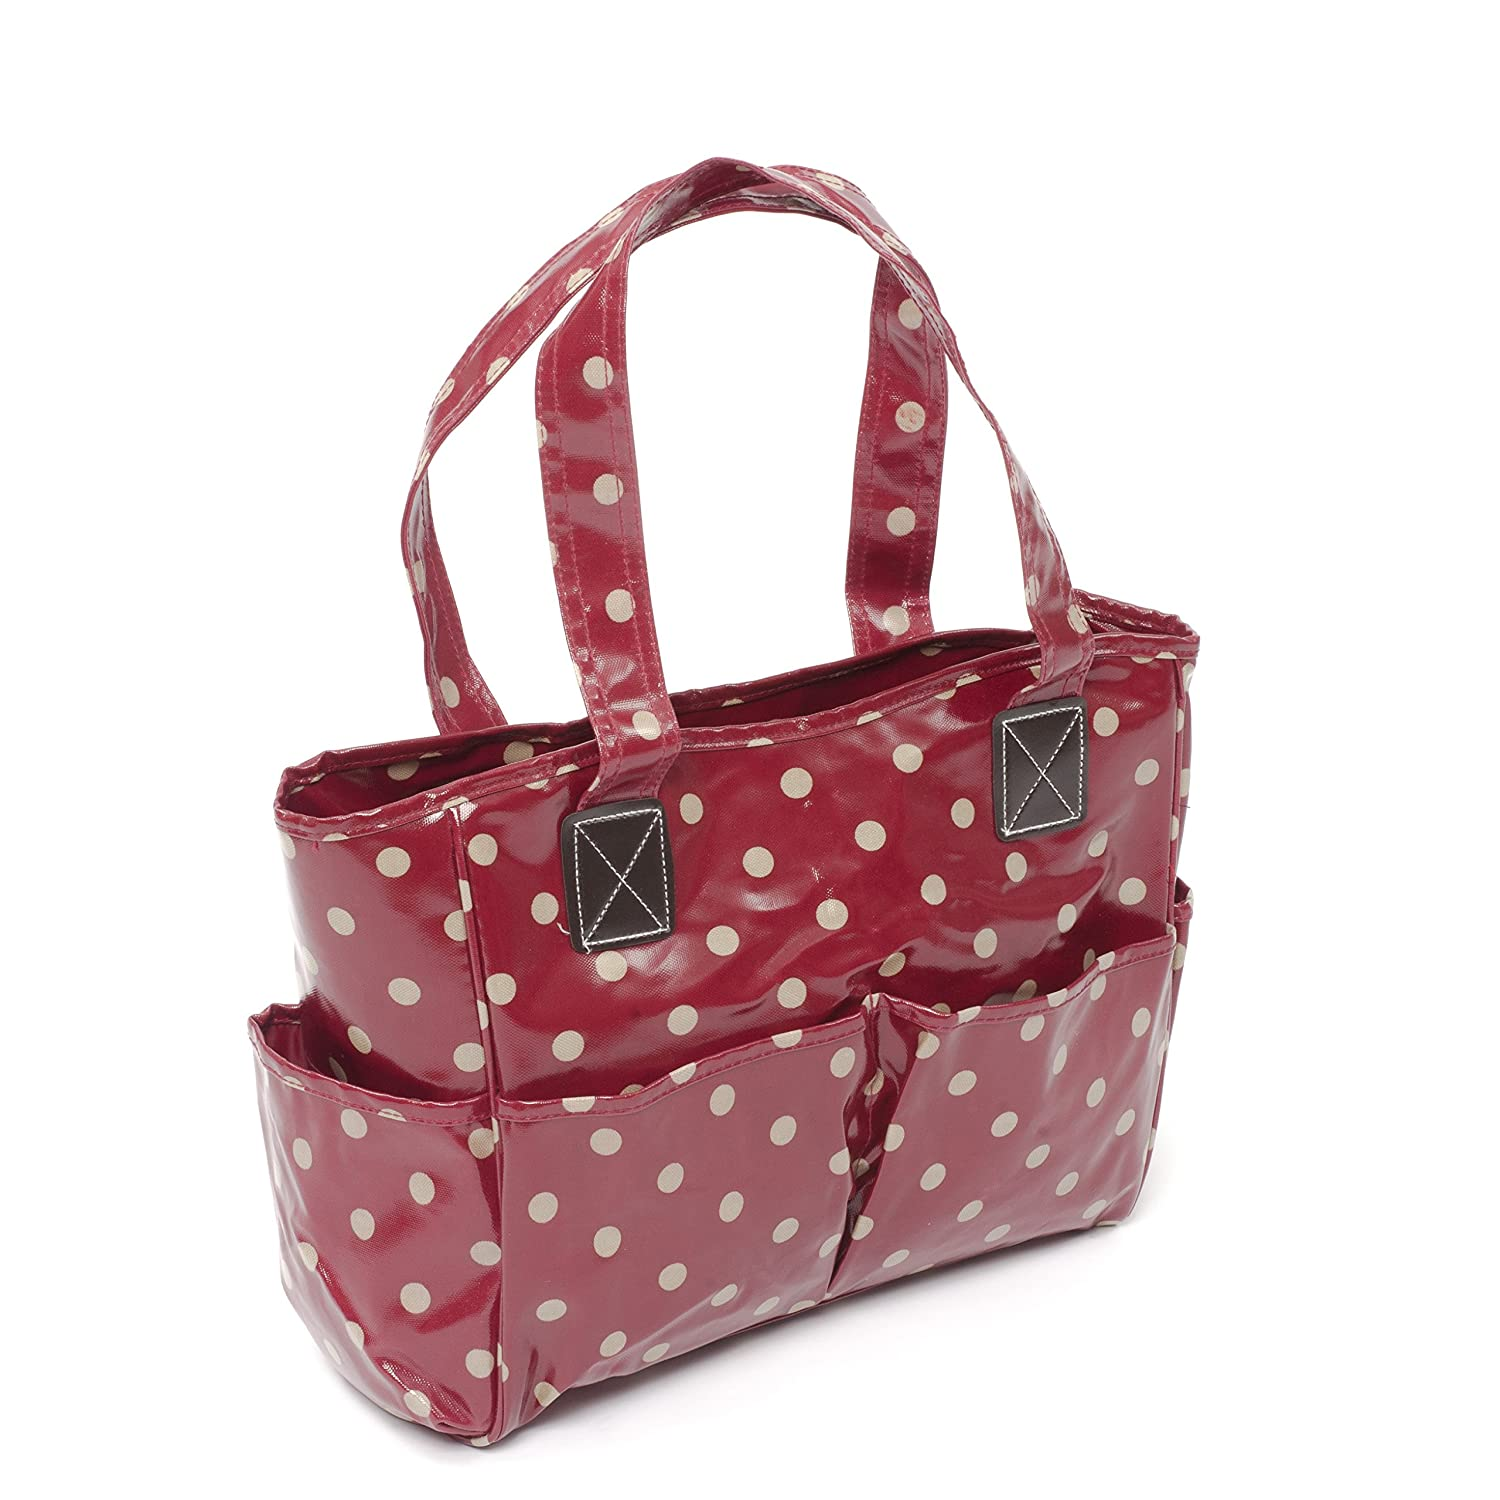 Craft Bag MRB\263 HobbyGift Charcoal Polka Dot Matt PVC